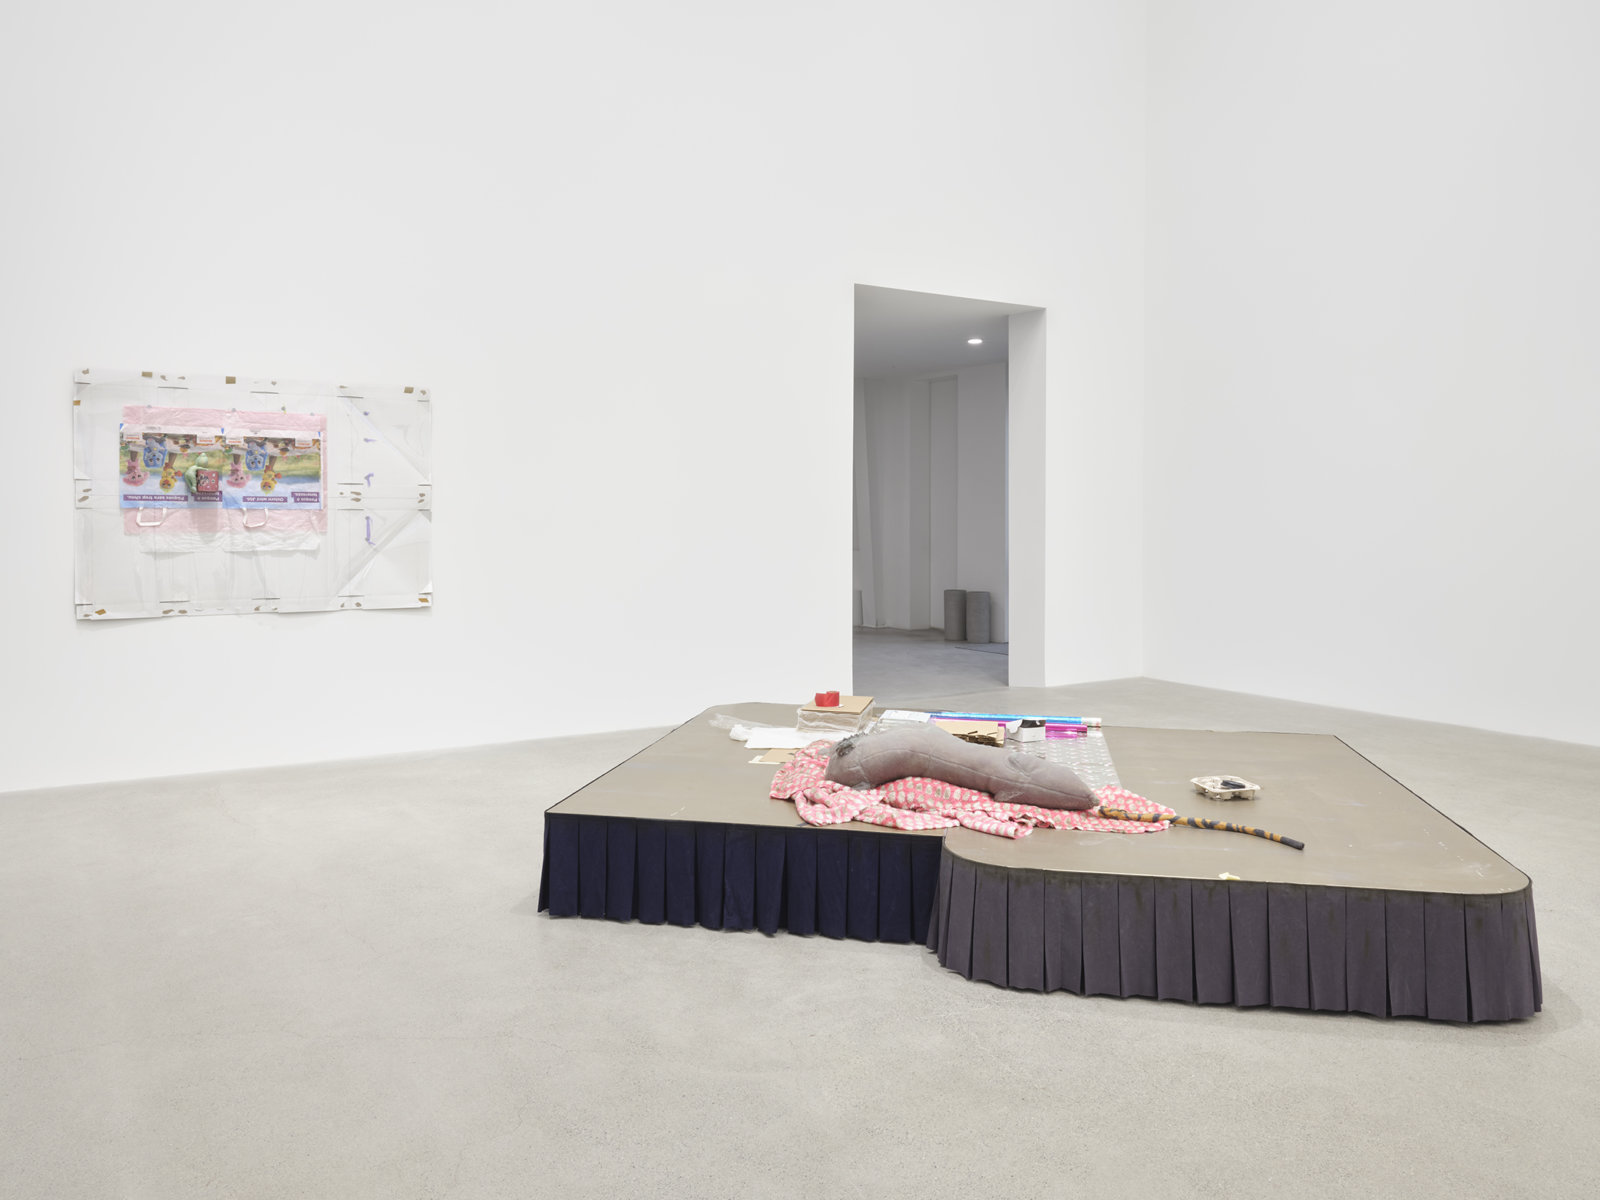 Liz Magor, installation view, Downer, Catriona Jeffries, Vancouver, 2020 by Liz Magor